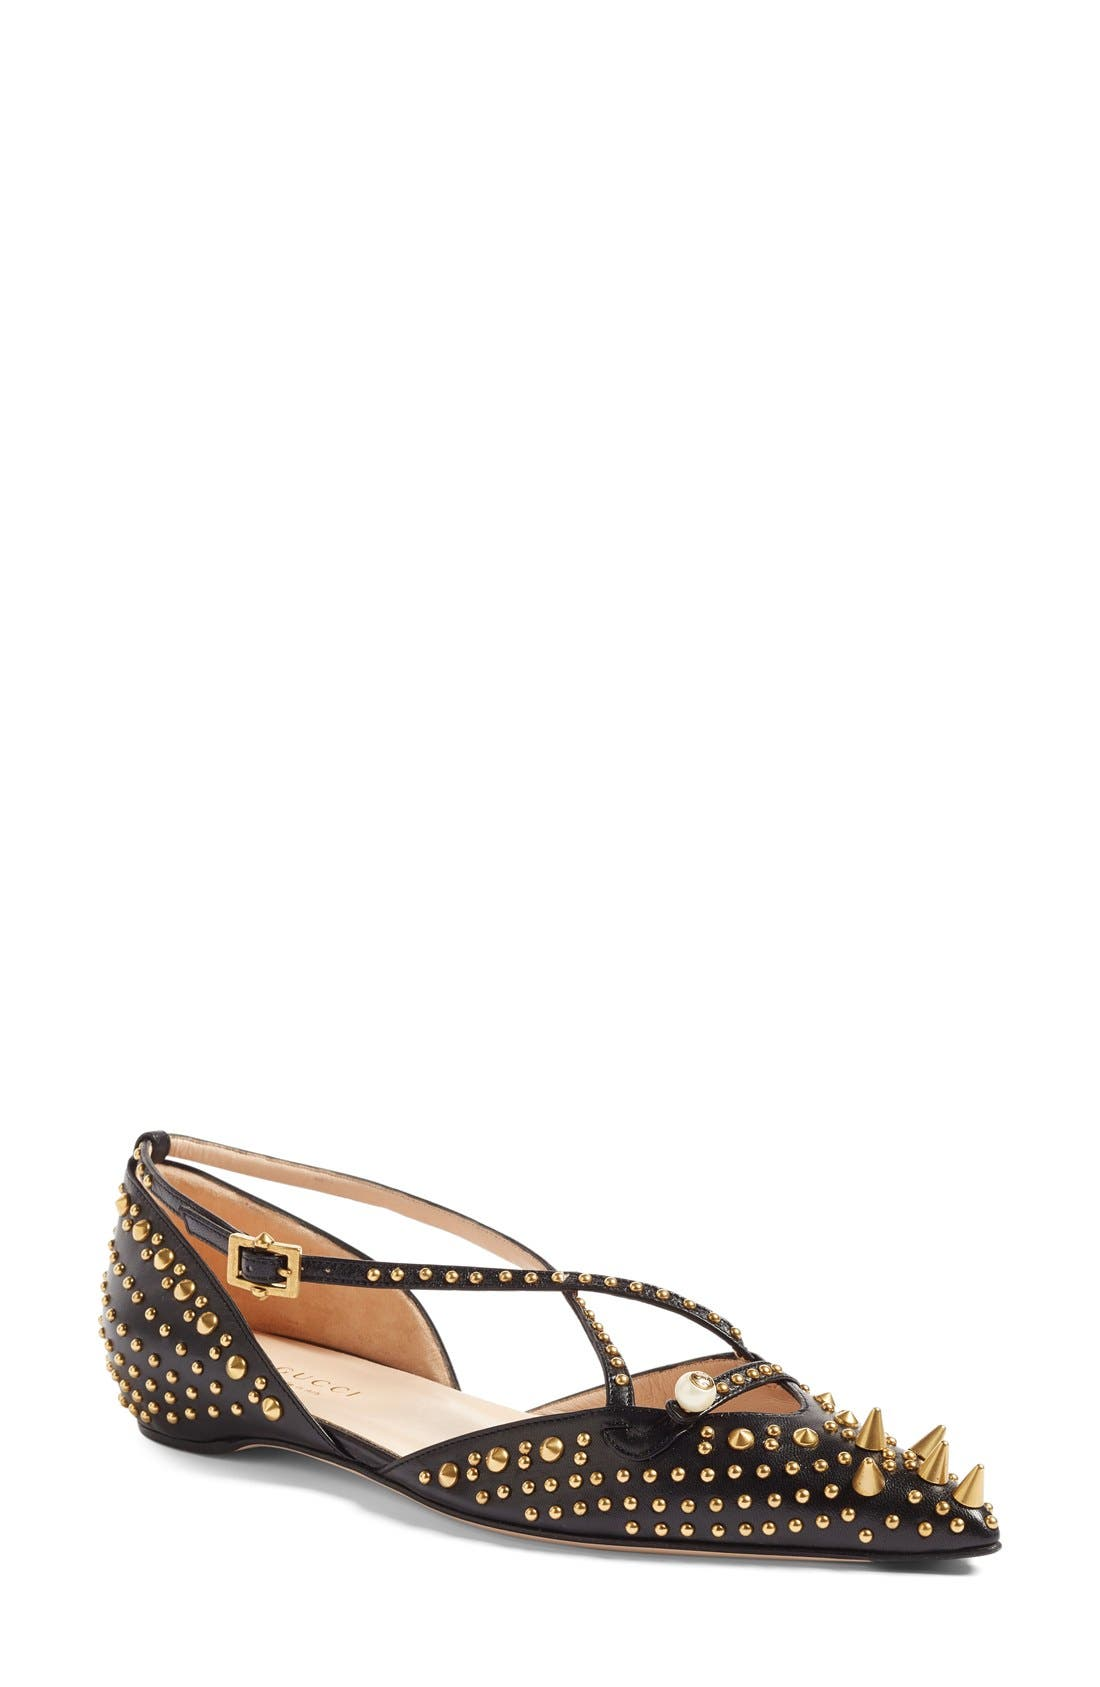 Alternate Image 1 Selected - Gucci Unia Studded Flat (Women)